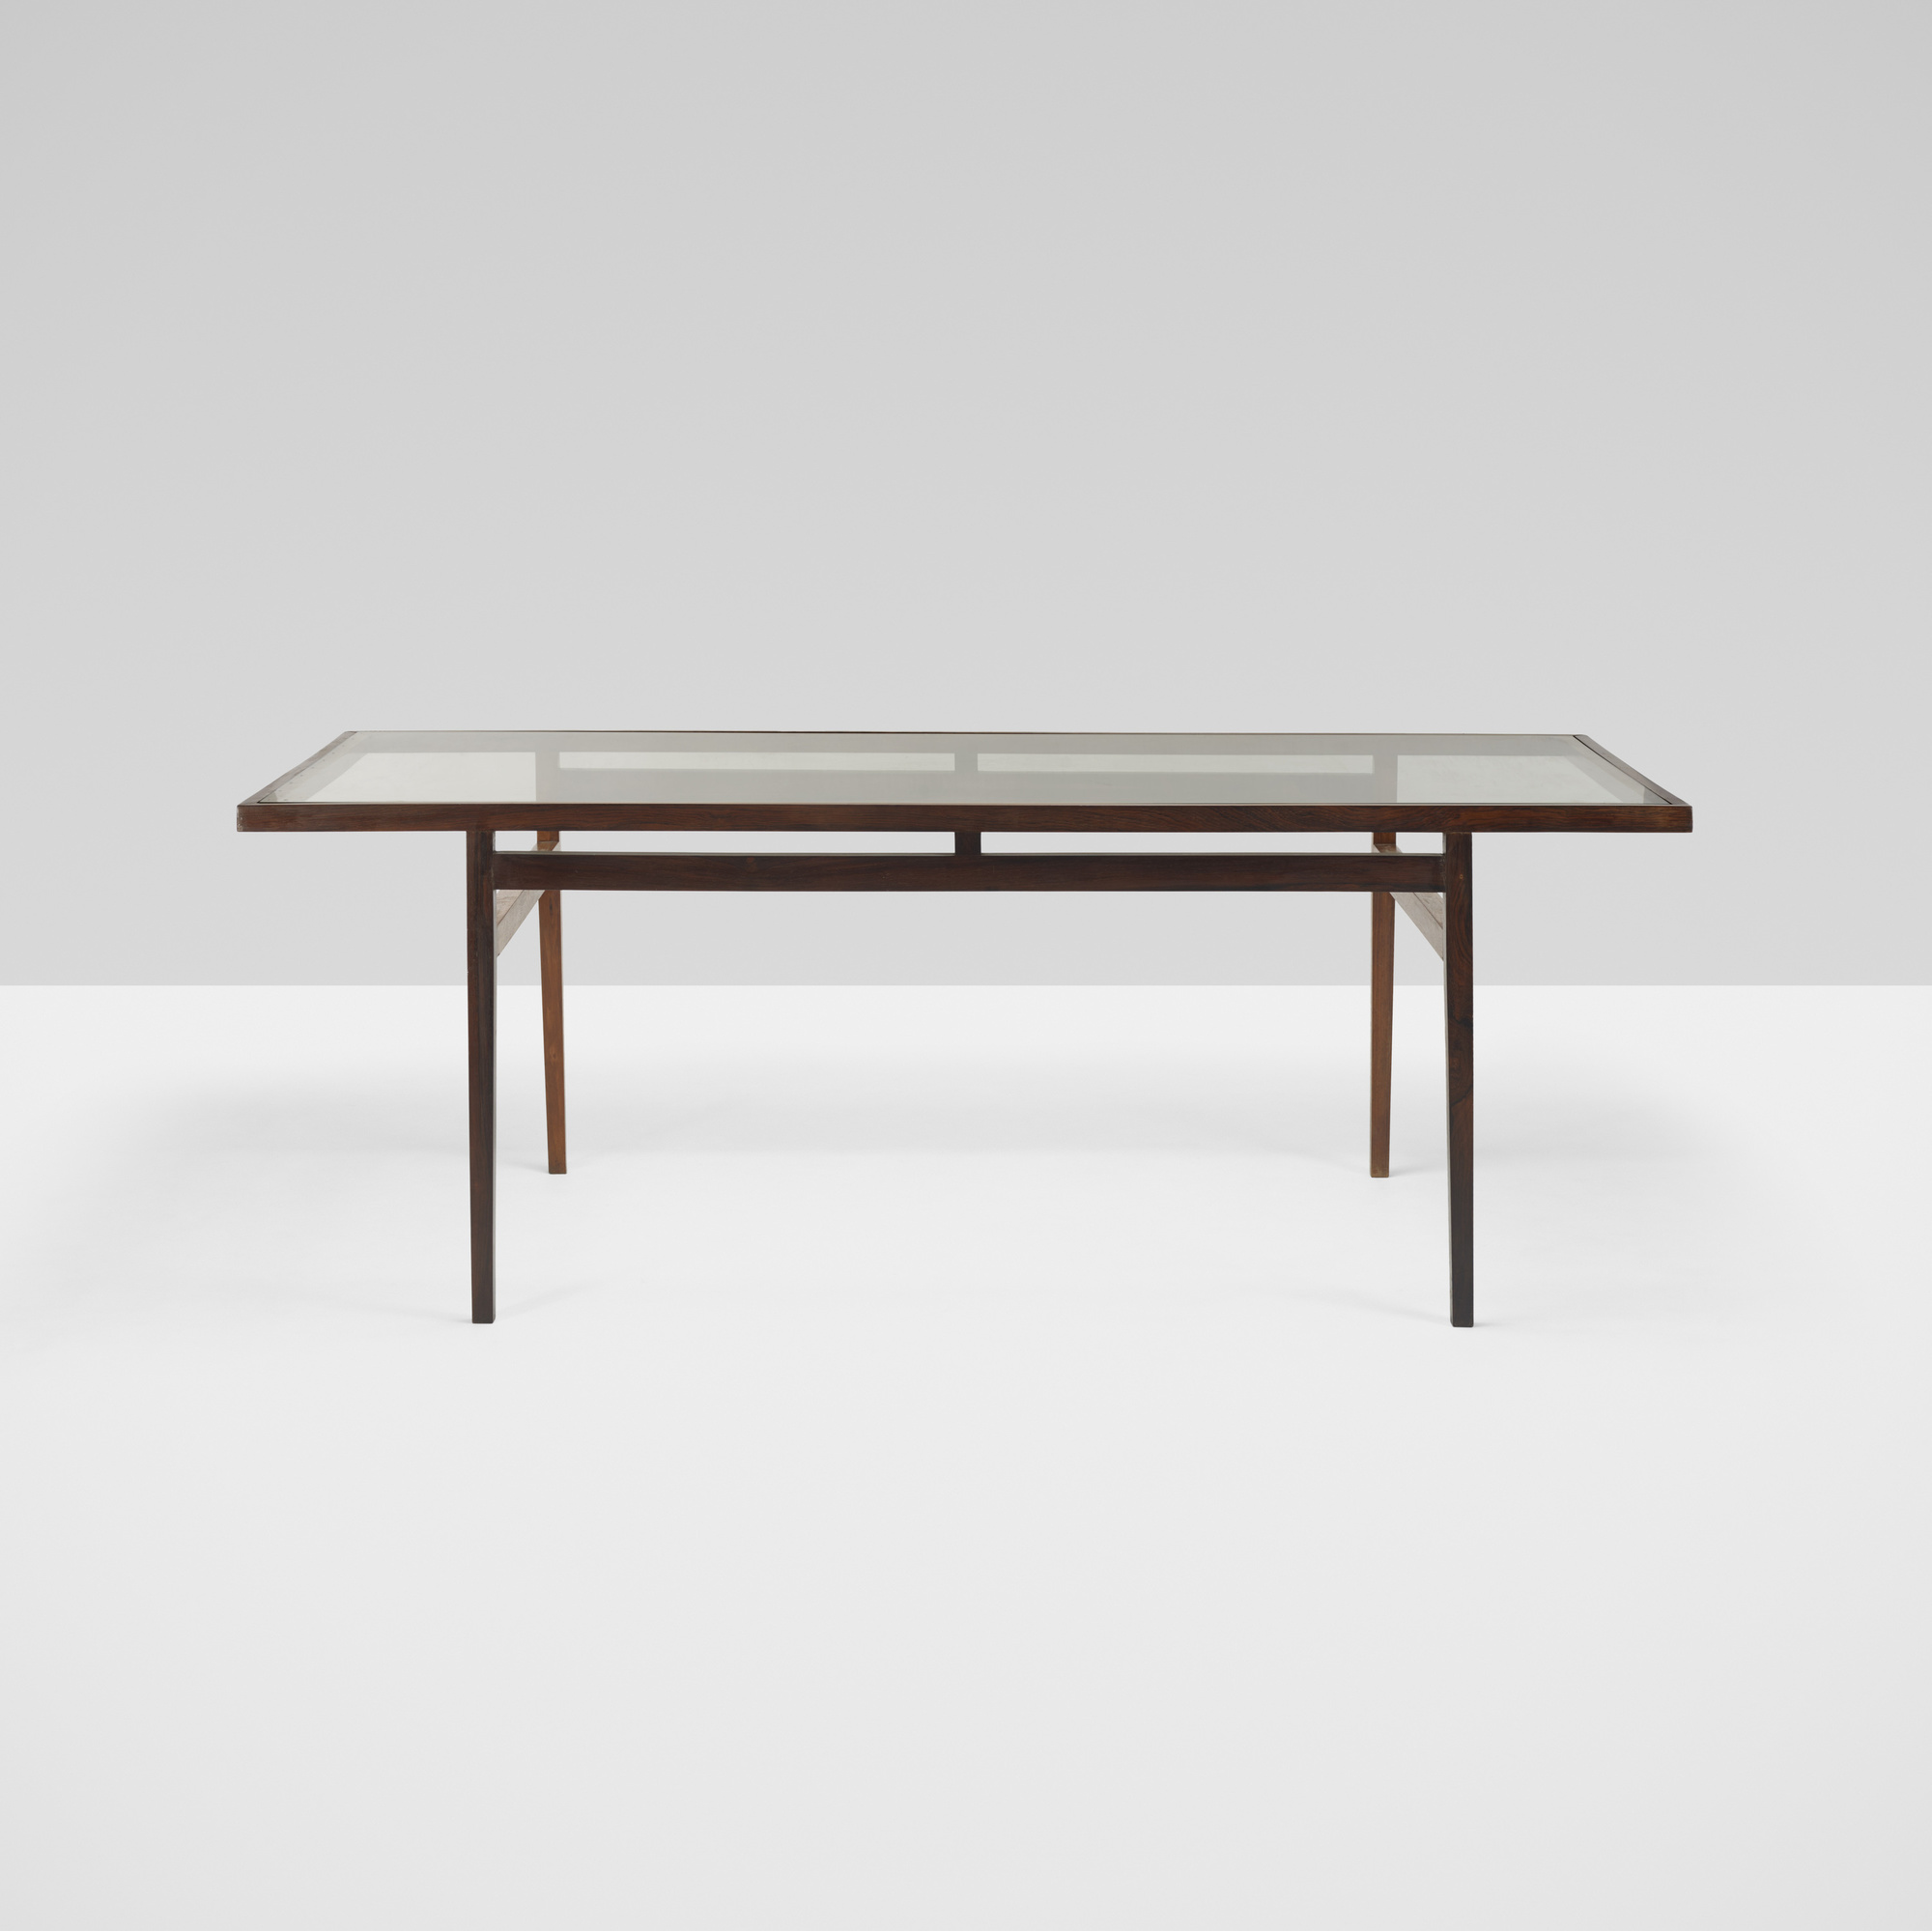 174: Branco & Preto / dining table (1 of 3)